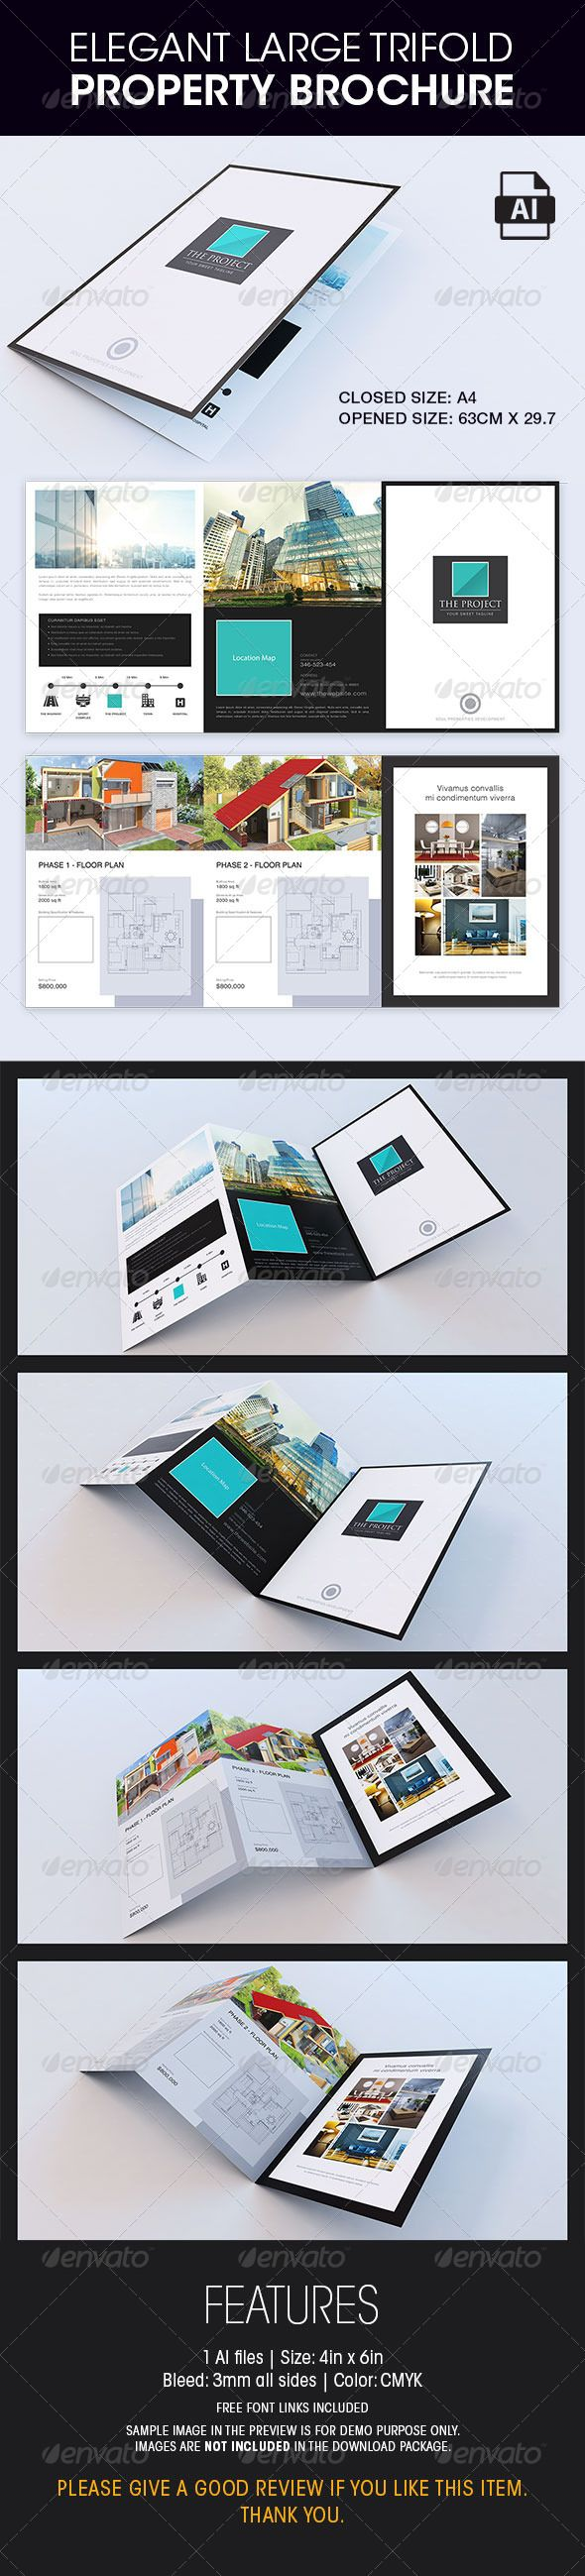 Elegant Large Trifold Property Brochure - Corporate Brochures